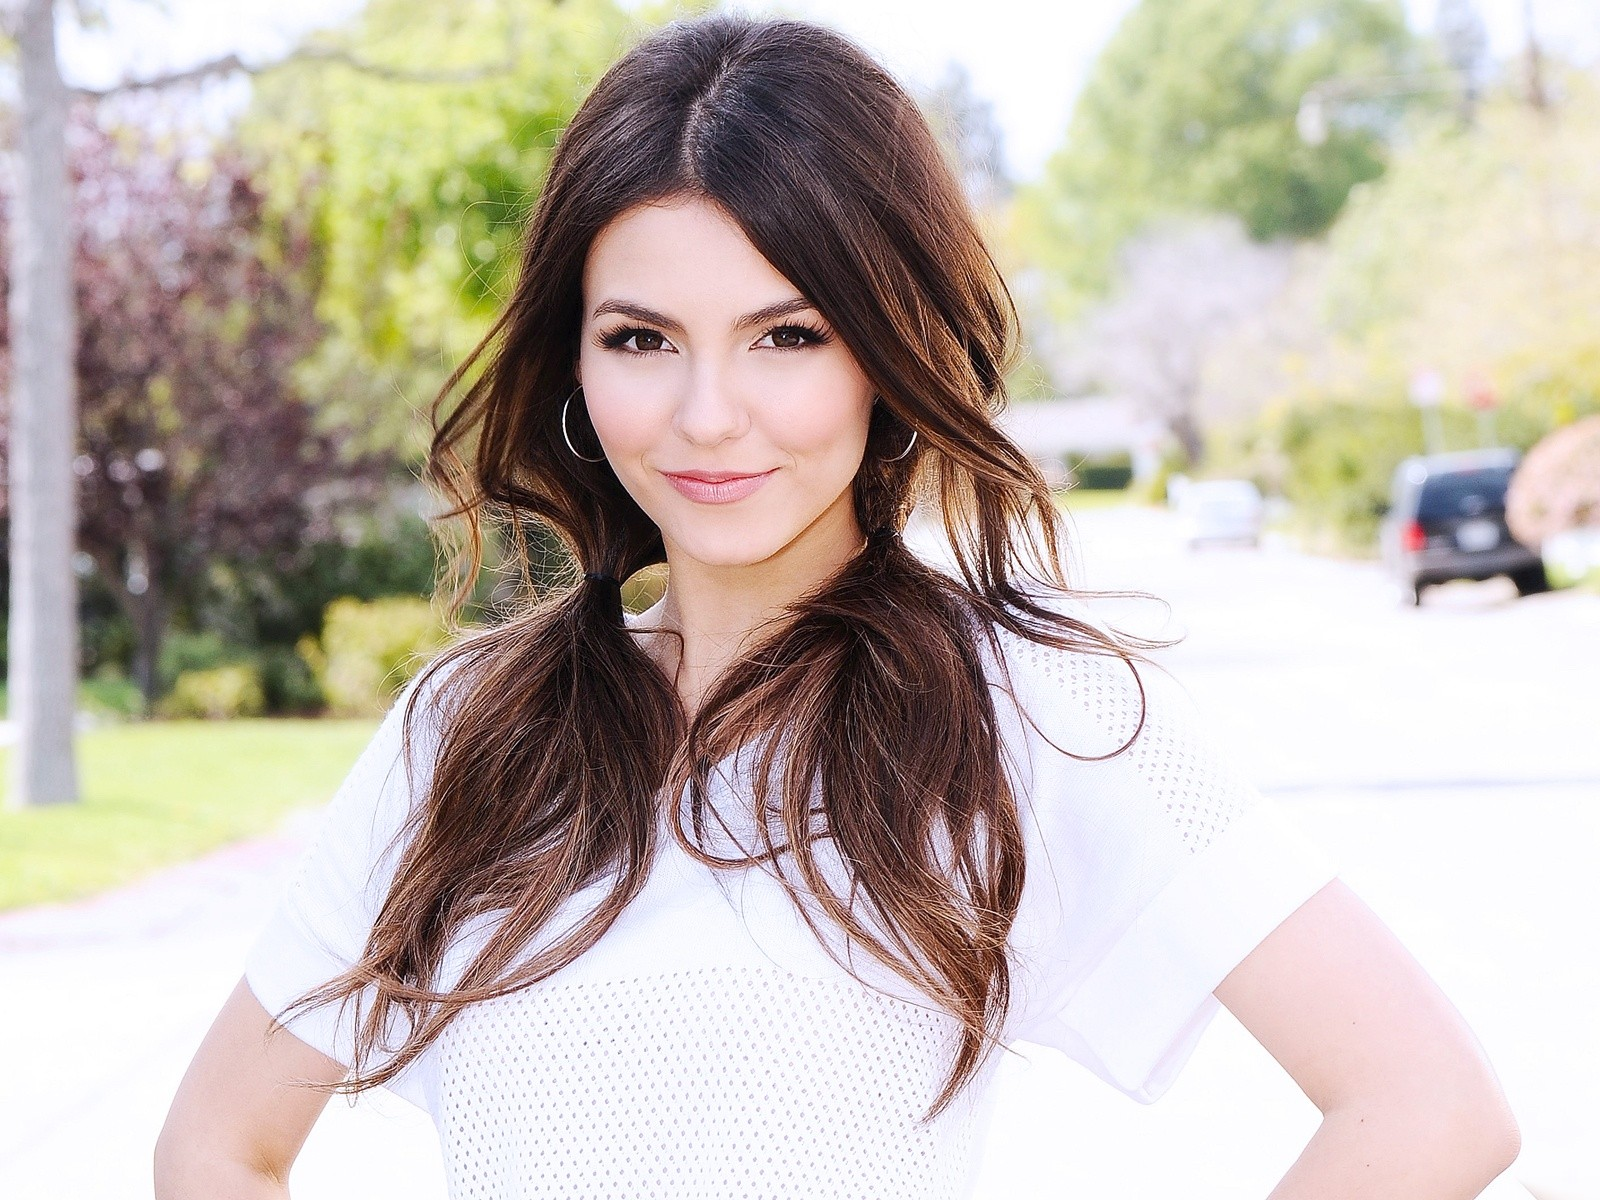 All Wallpapers Victoria Justice Hot Sexy wallpapers 1600x1200